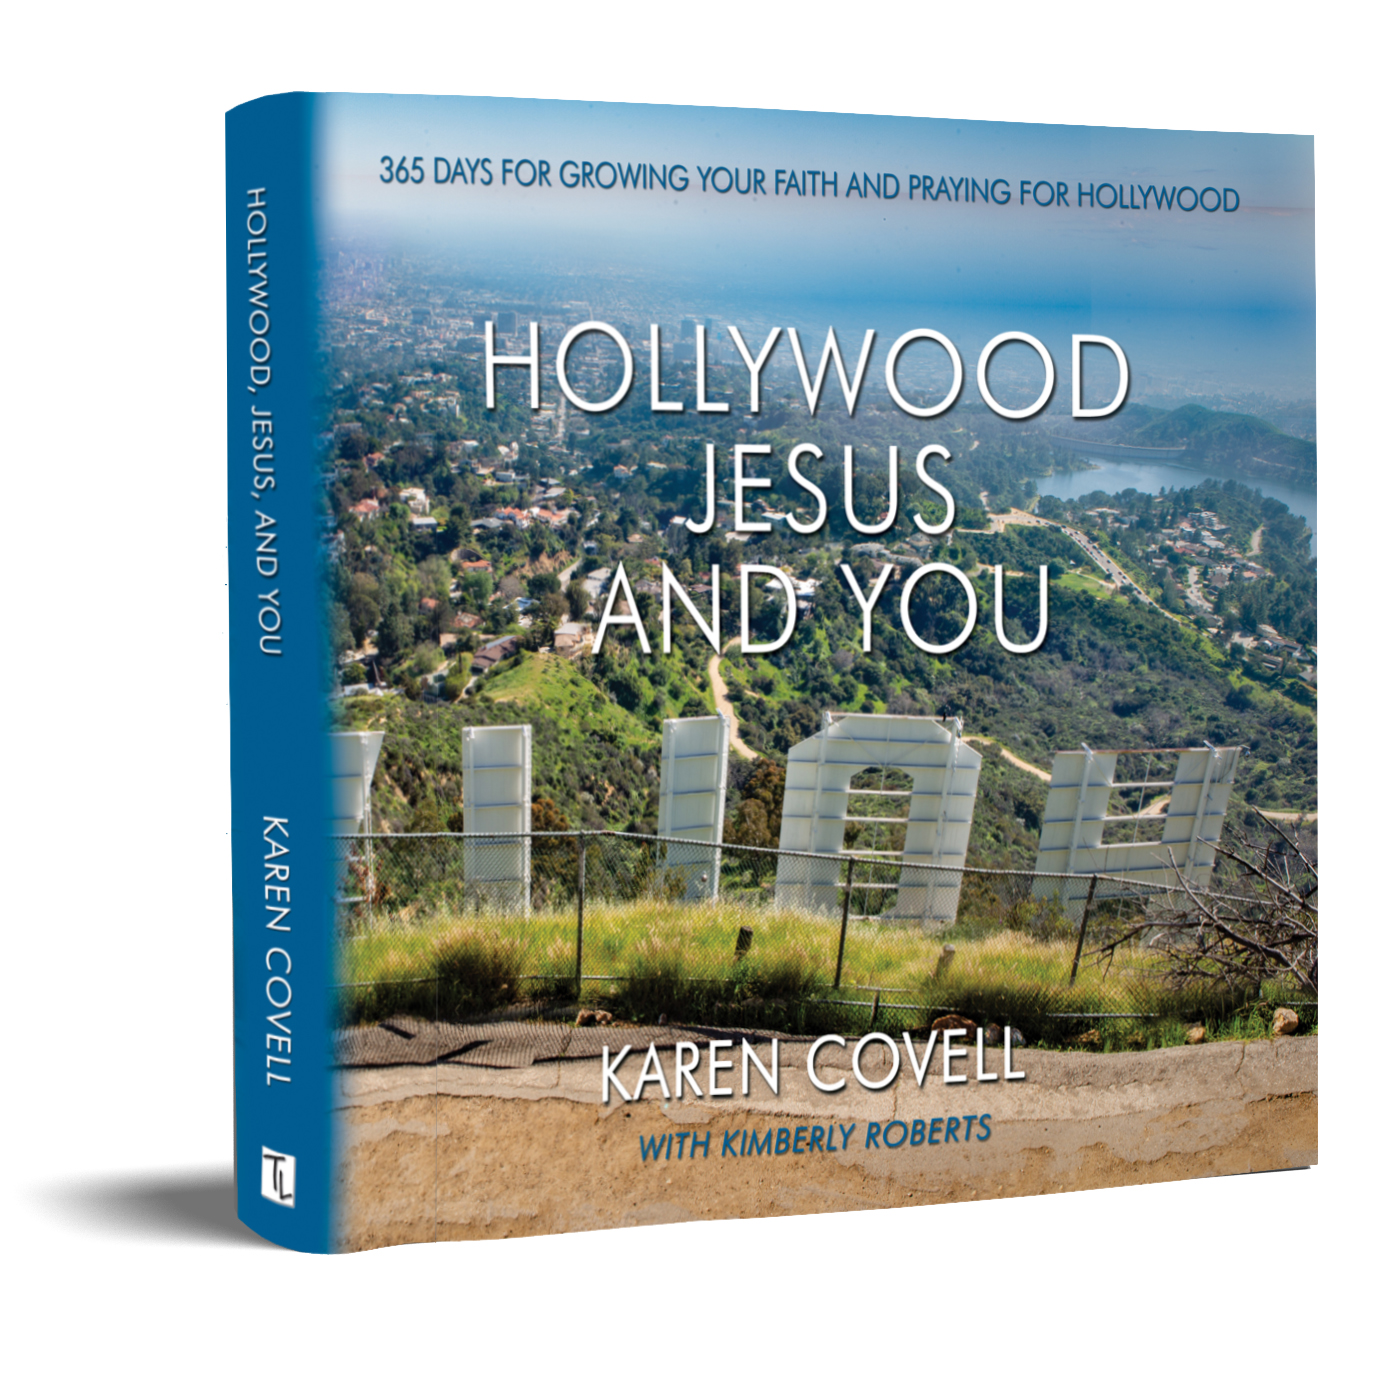 Hollywood, Jesus and You